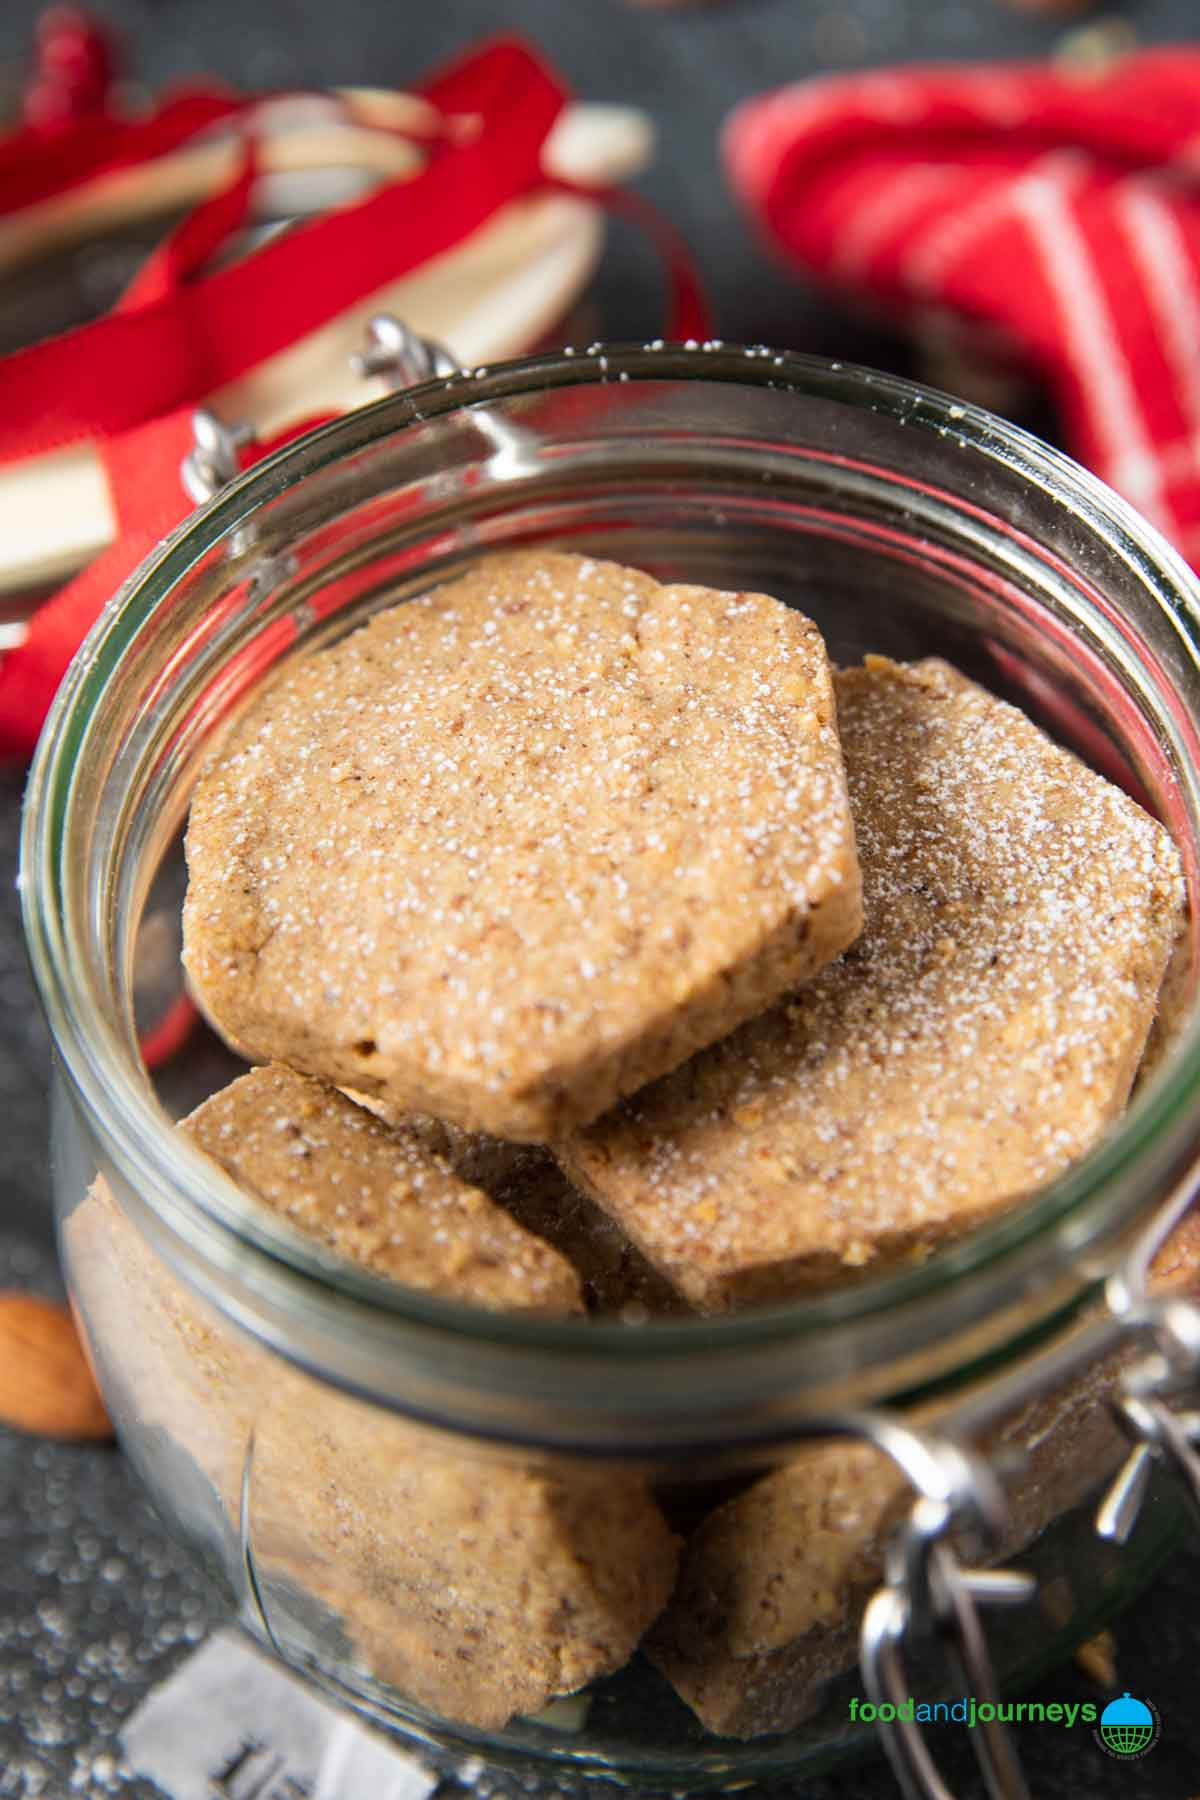 Cooled polvorones placed in a jar for longer storage.